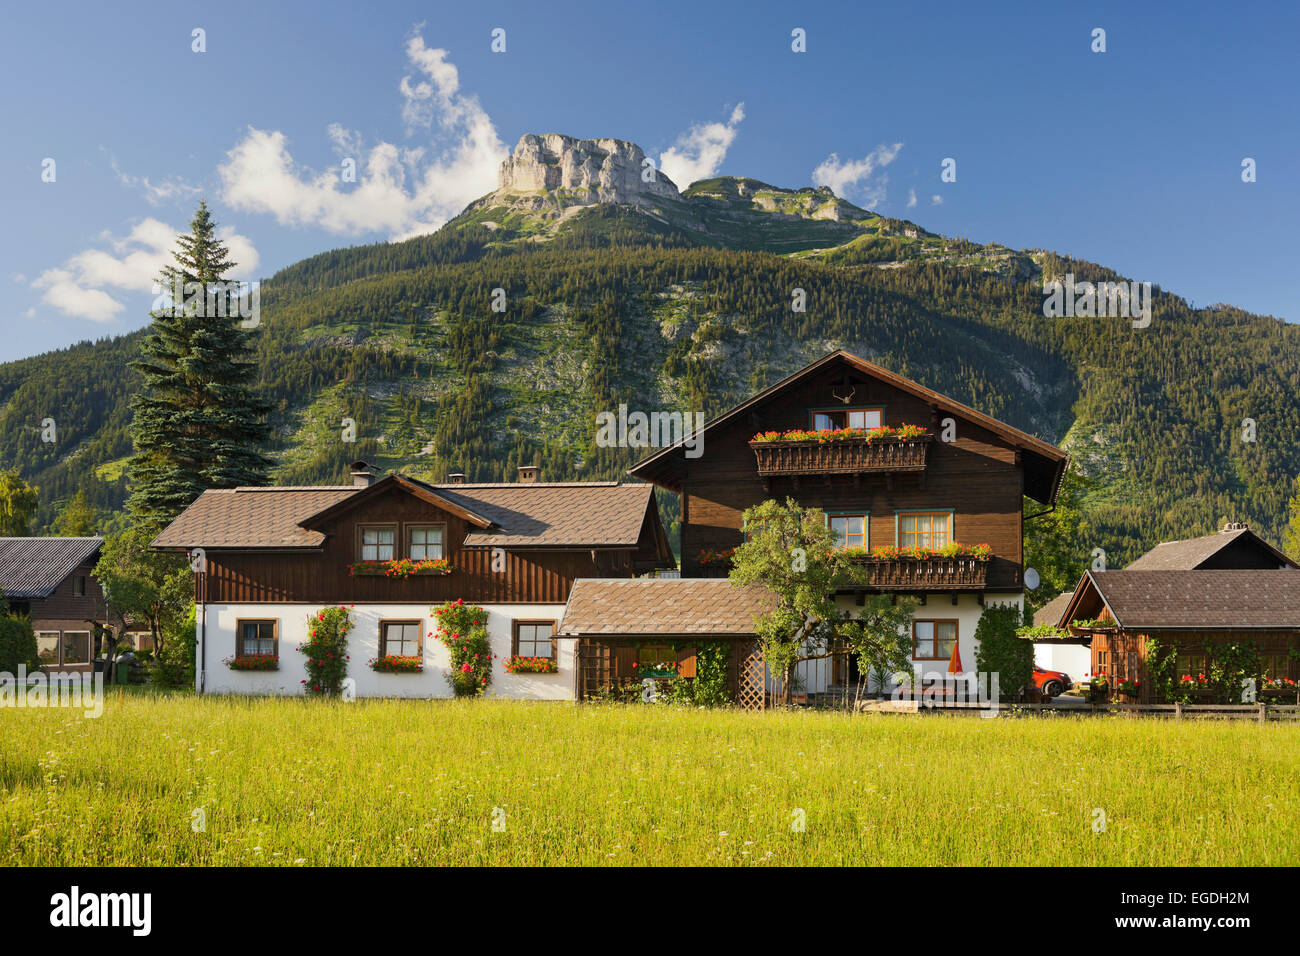 Traditional houses in Altaussee, Berg Loser, Styria, Austria - Stock Image